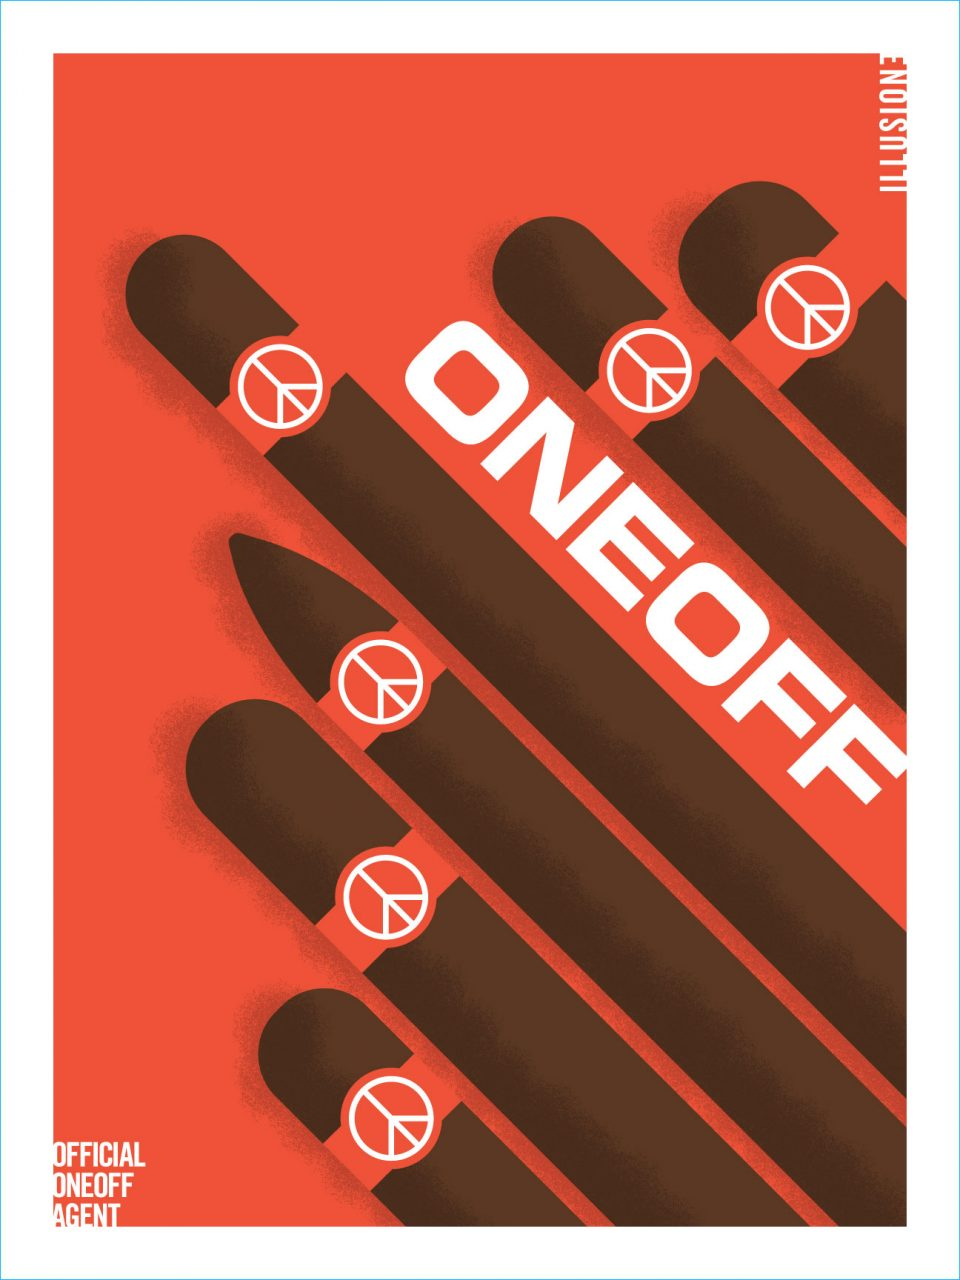 fum-036-18-oneoff-poster-18x24-final